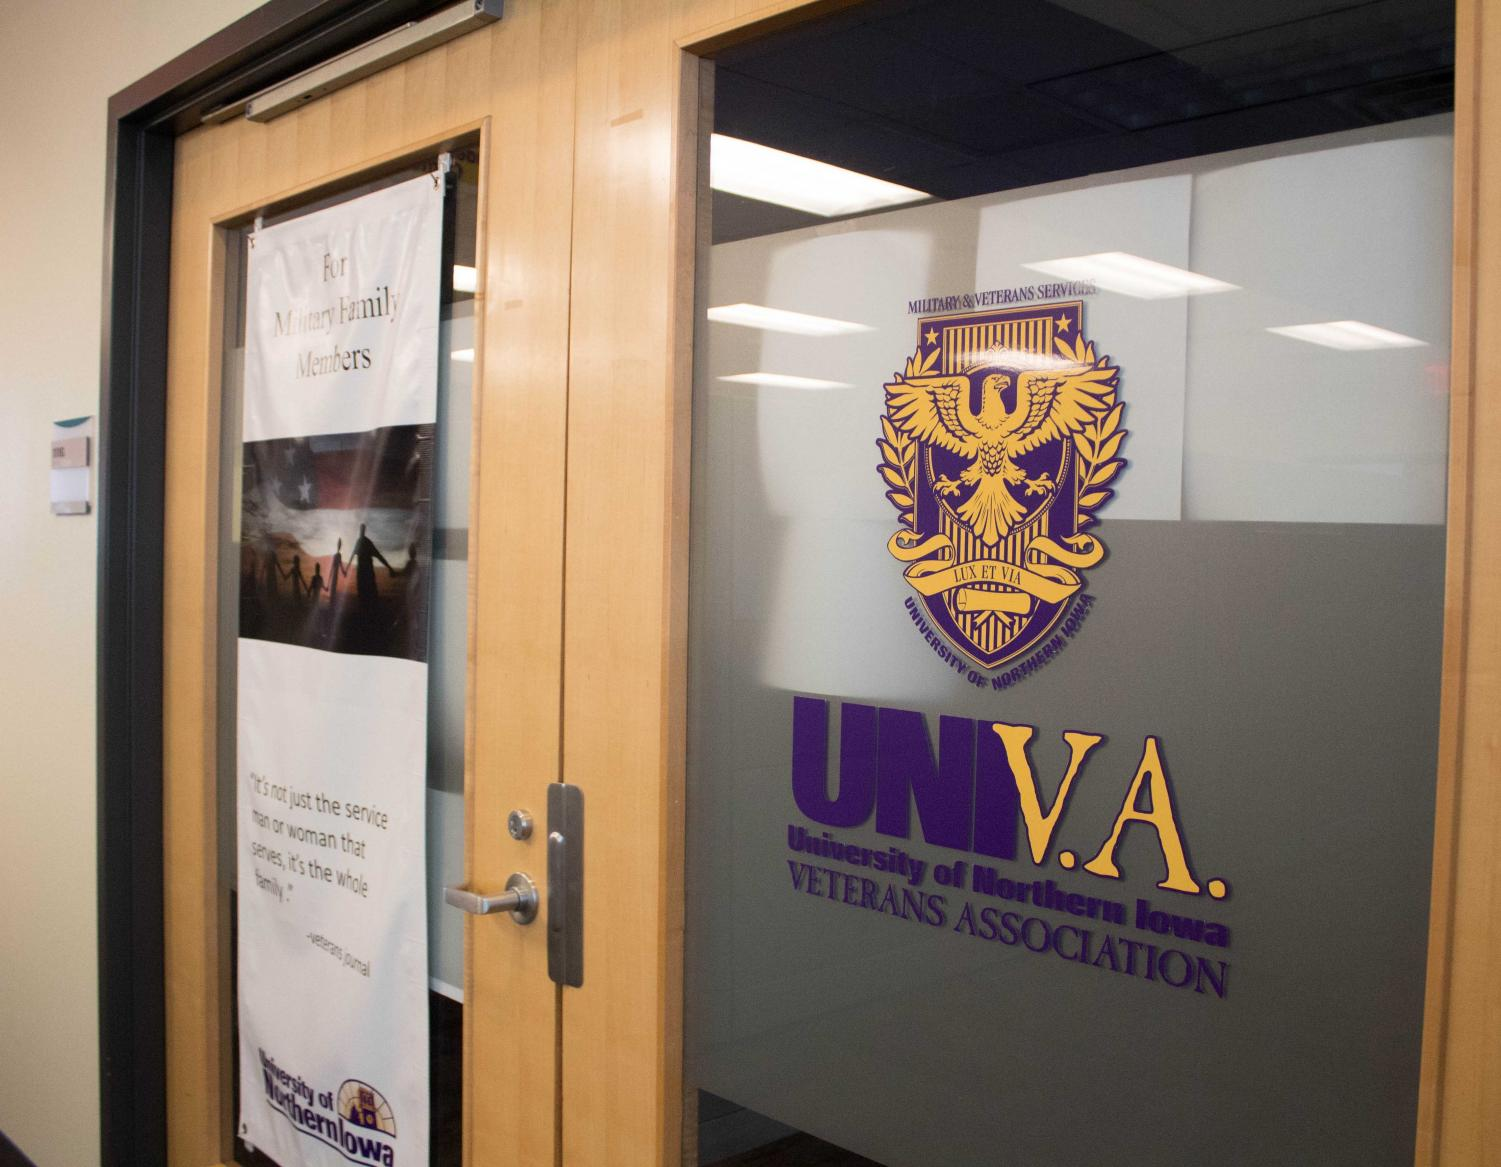 The UNI Veterans Association office is located on the plaza level of the Union and is open to any veterans or veterans family members.